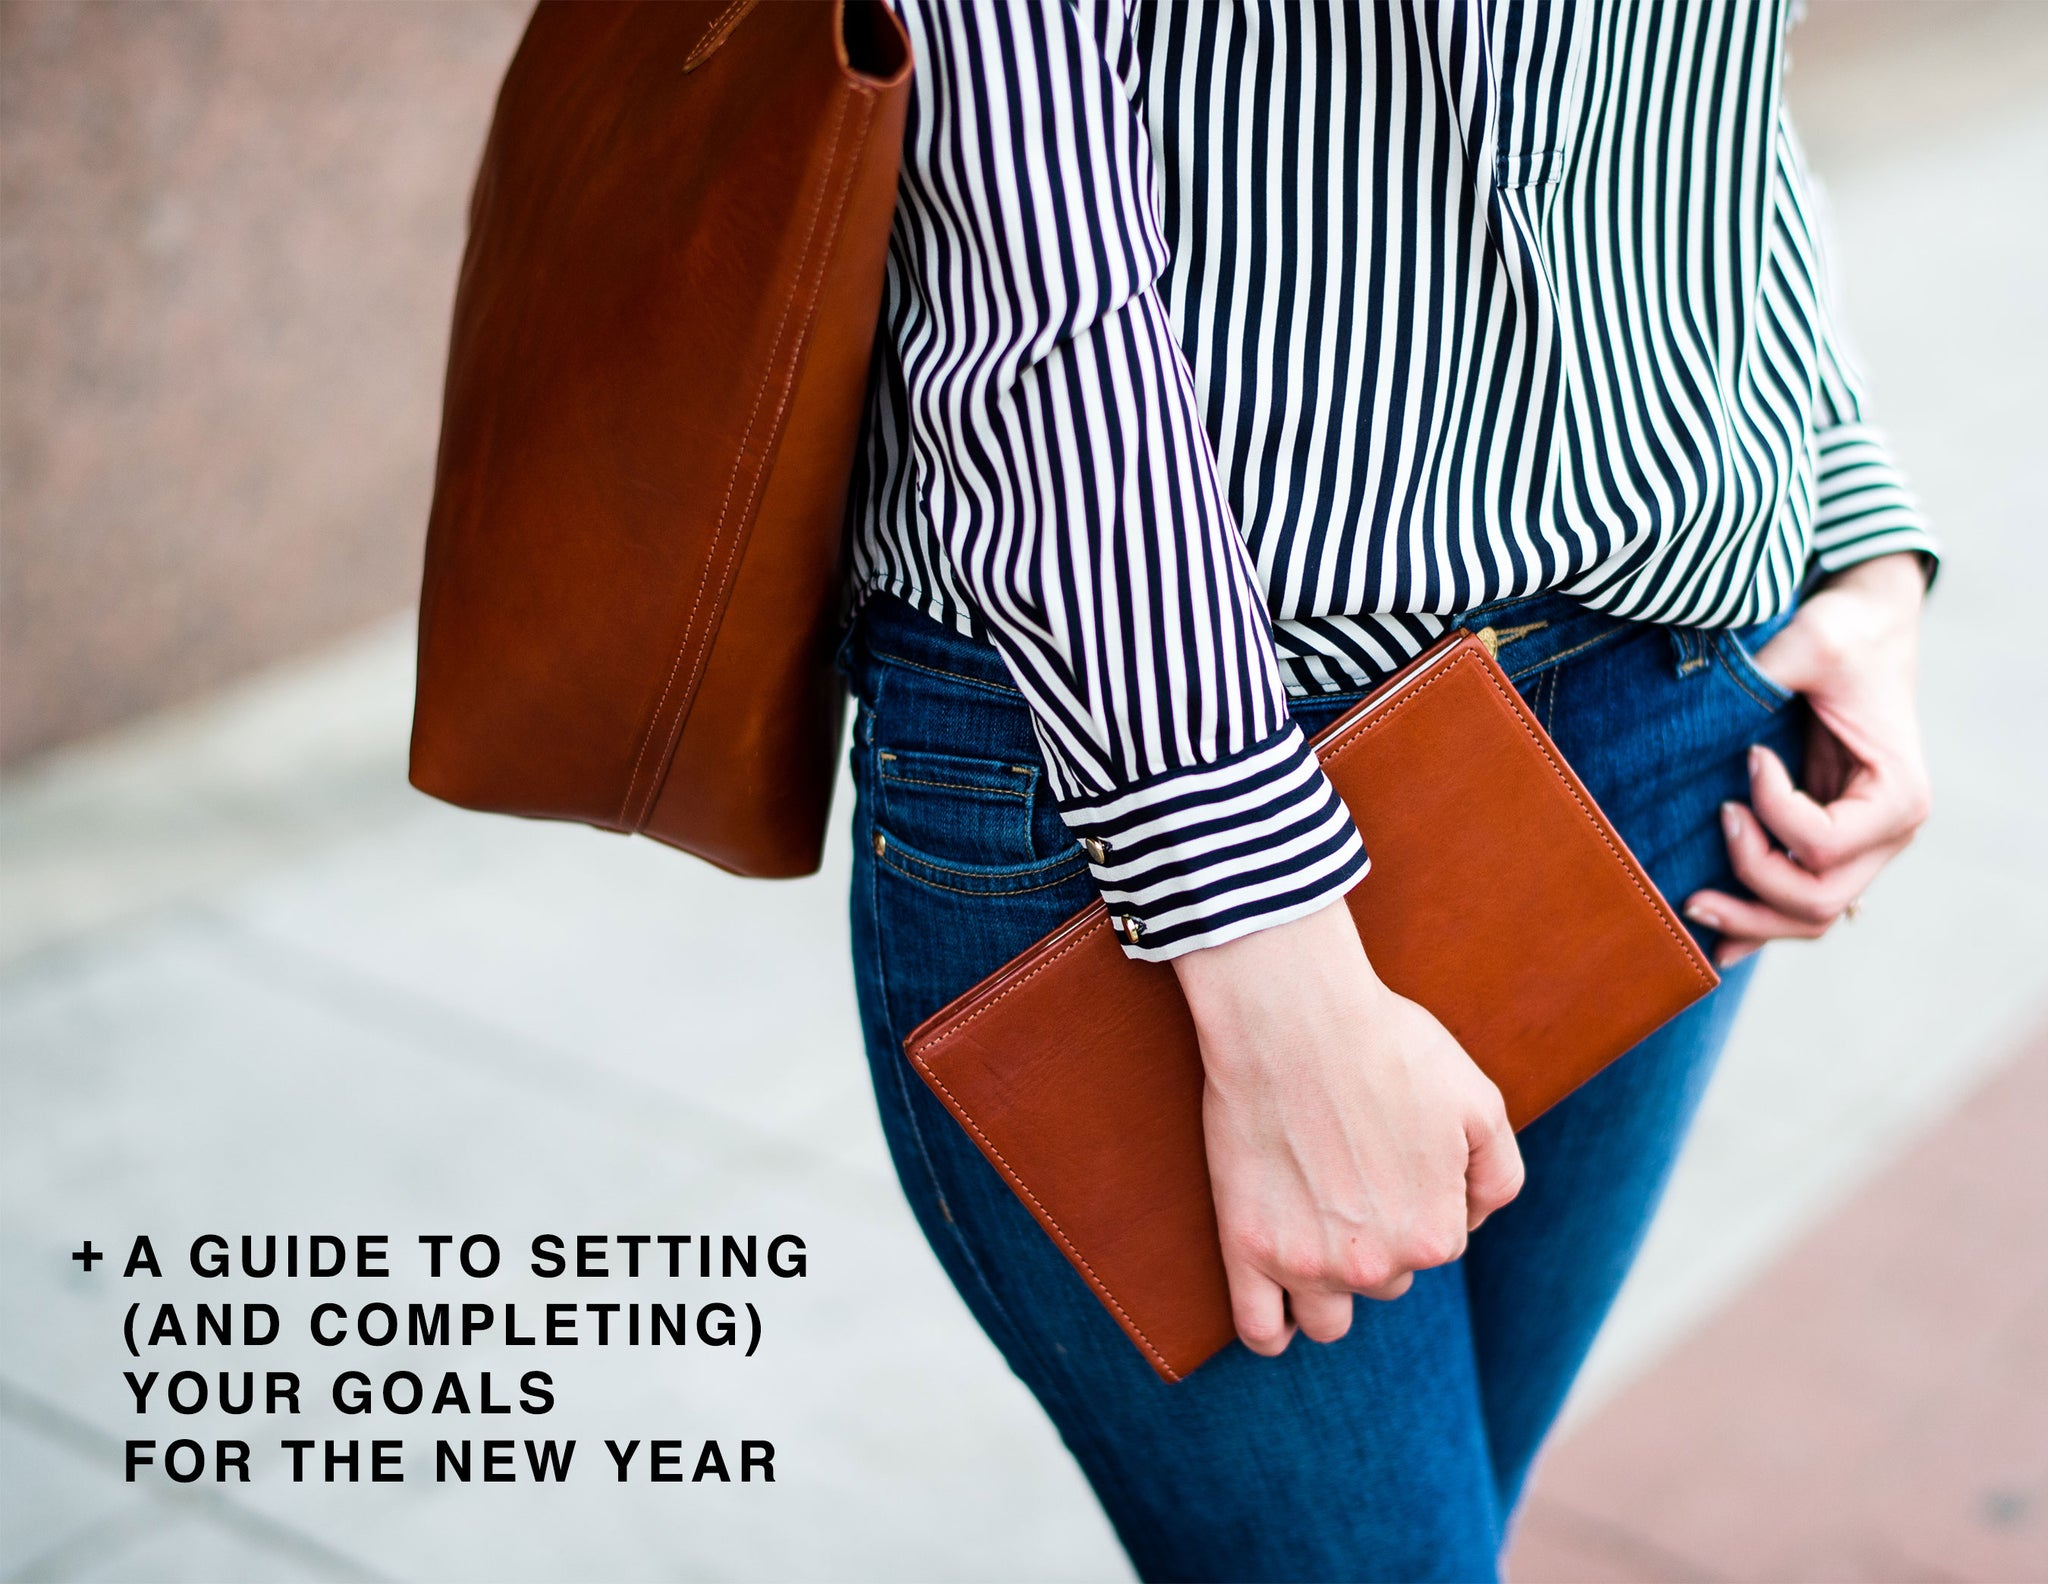 A Practical Guide to Setting (and Completing) Your Goals and Resolutions